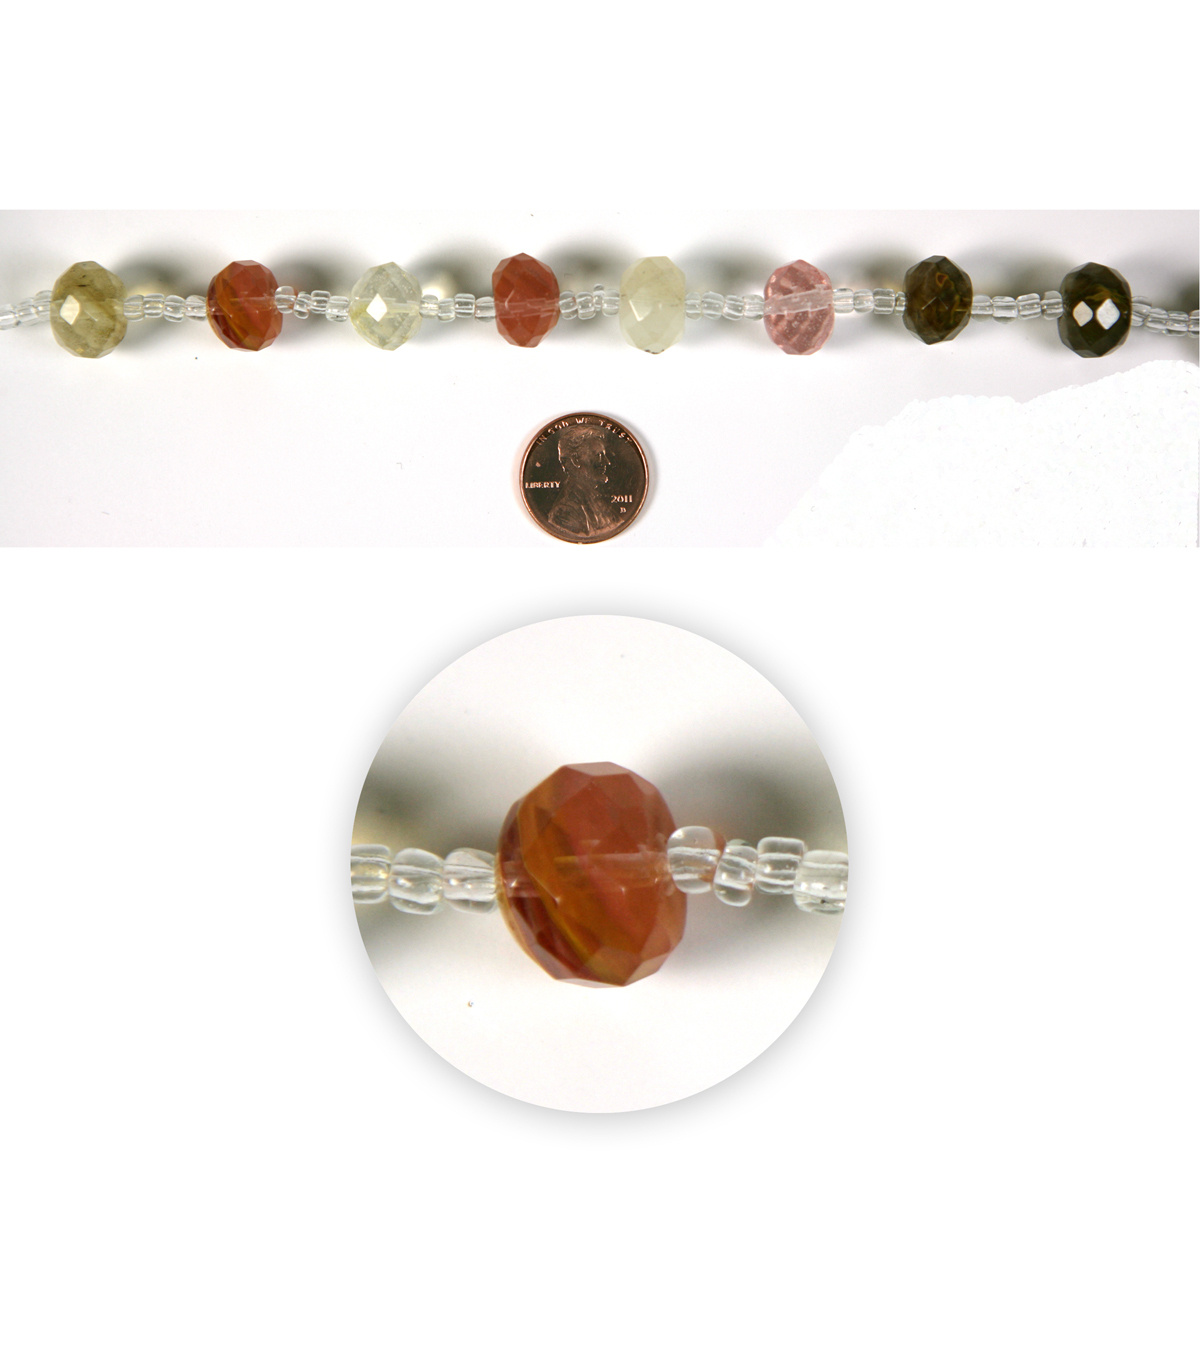 Blue Moon Strung Faux Amber Glass Beads,Rondelle,Amber,Facetted